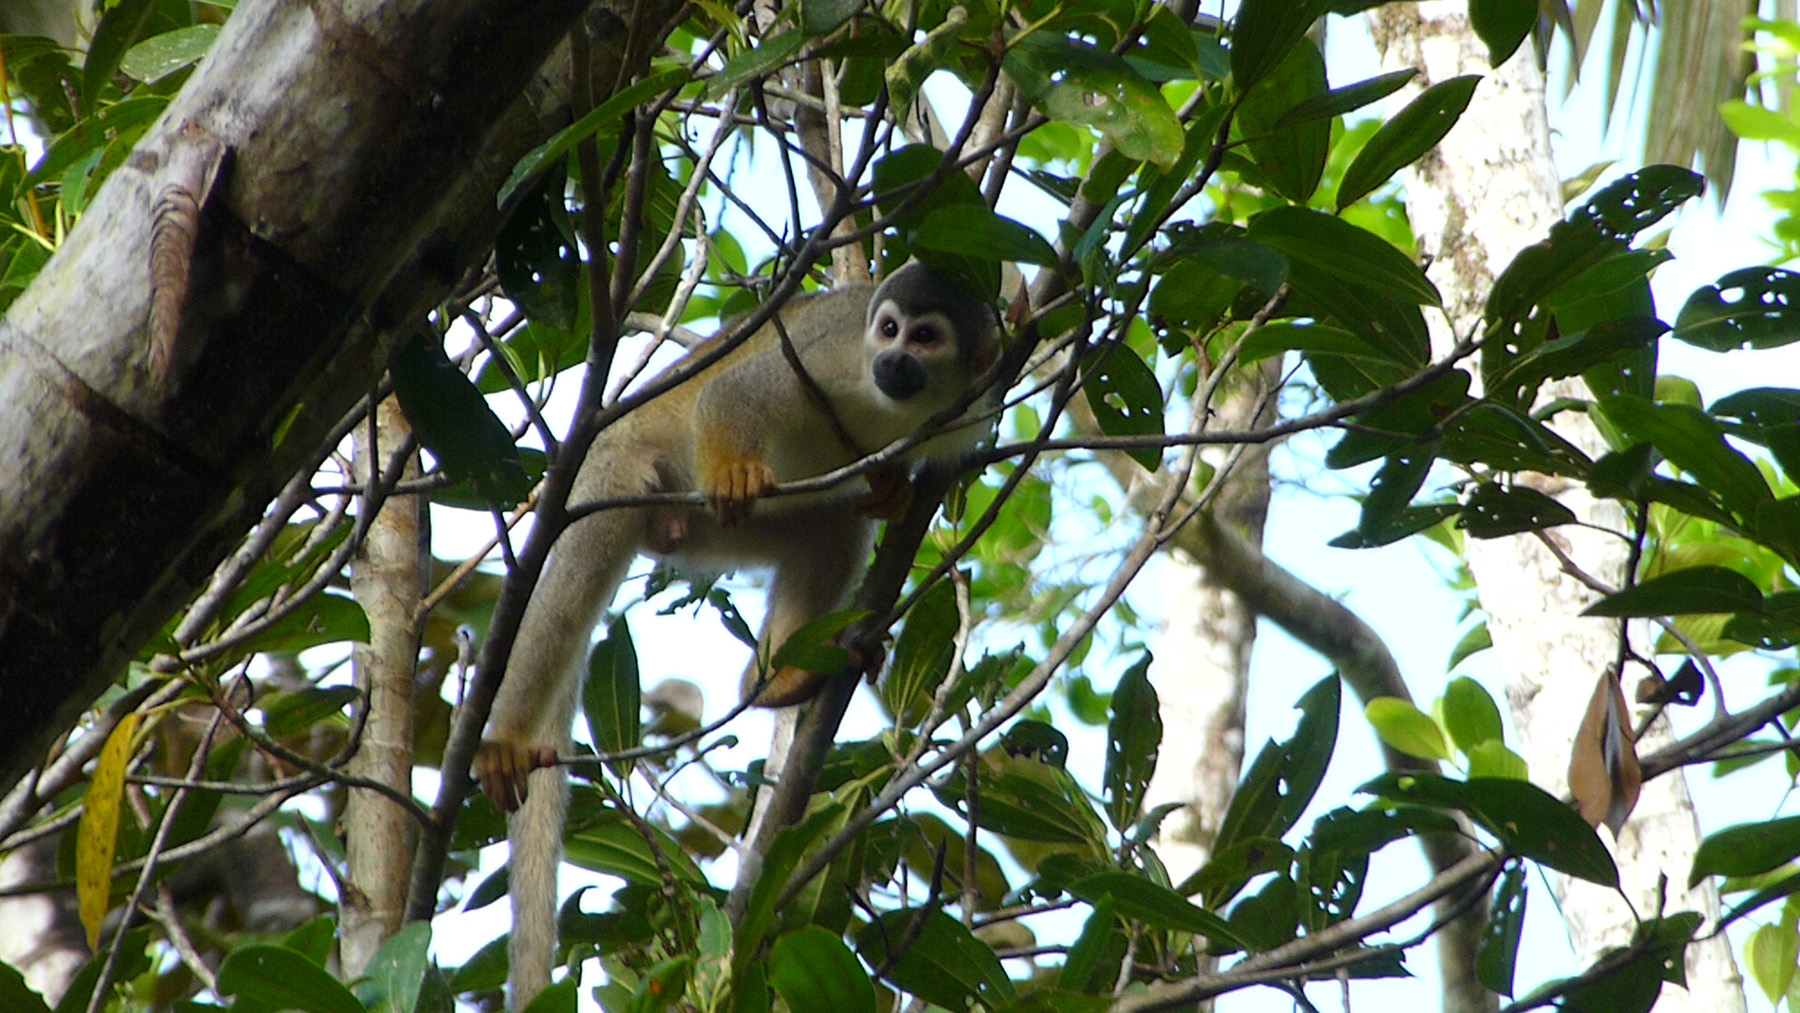 A Squirrel Monkey Appears